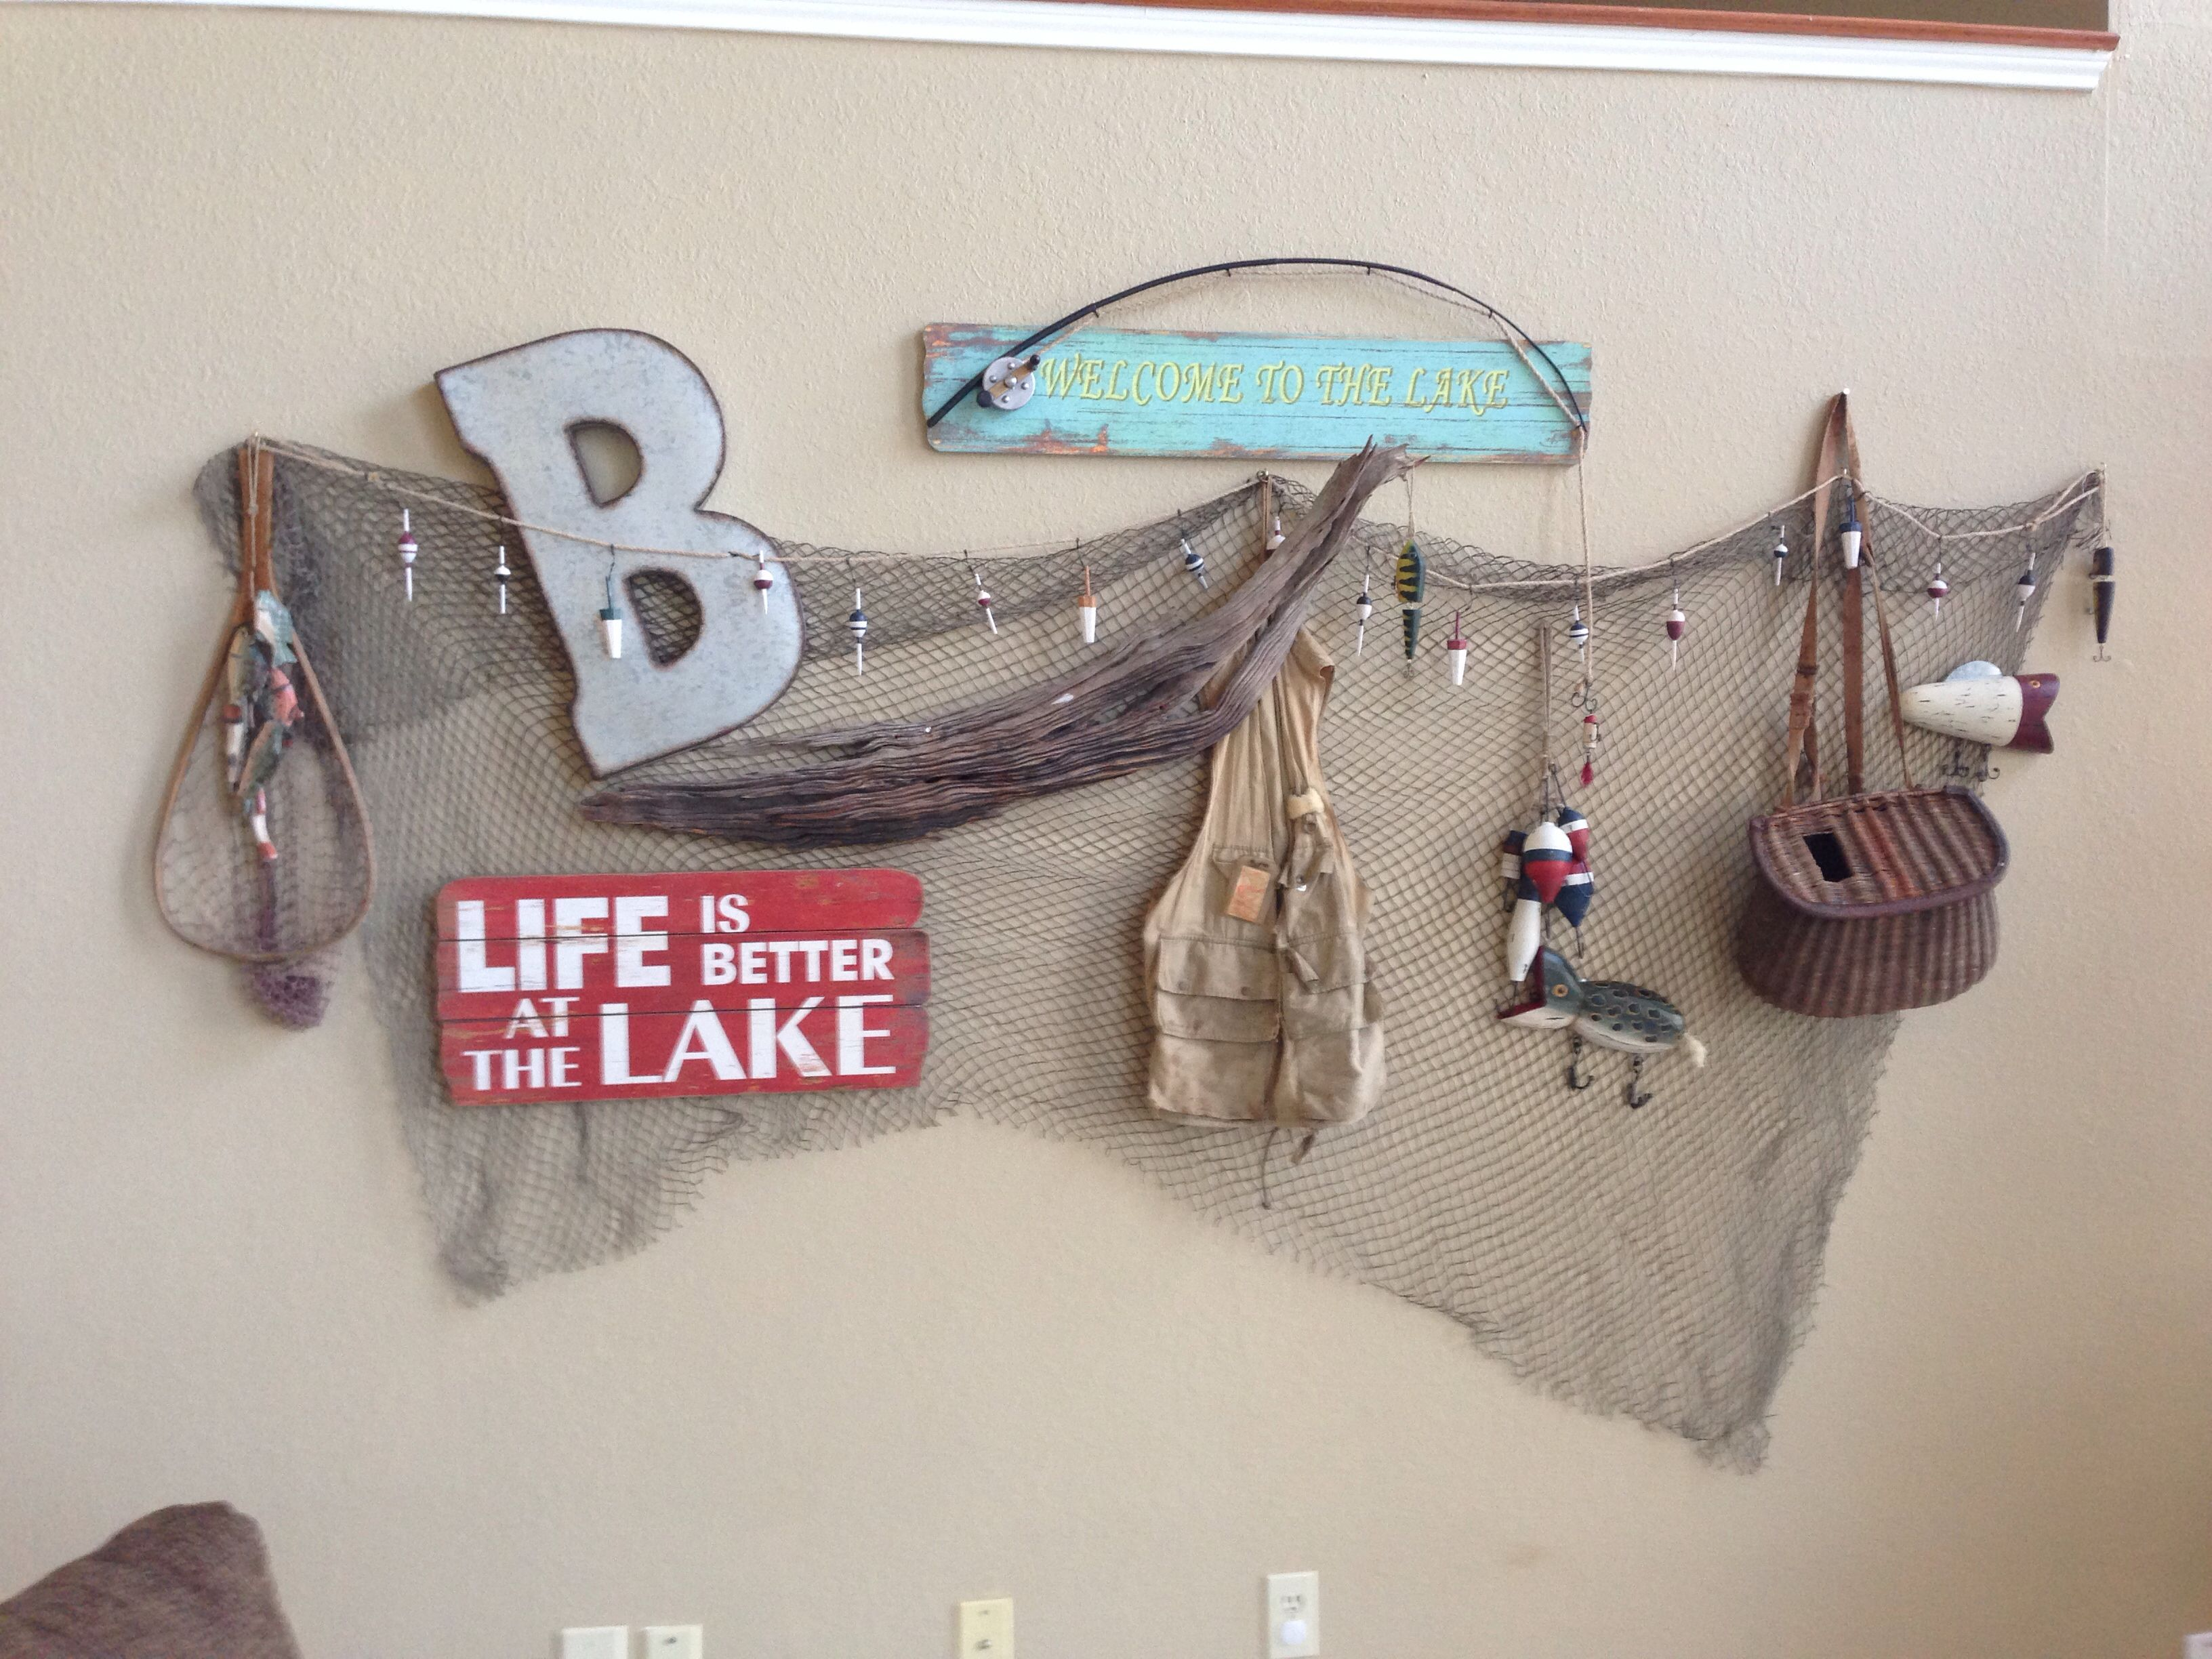 Lake House Wall Decor With Fish Net And Fishing Gear 12 23 13